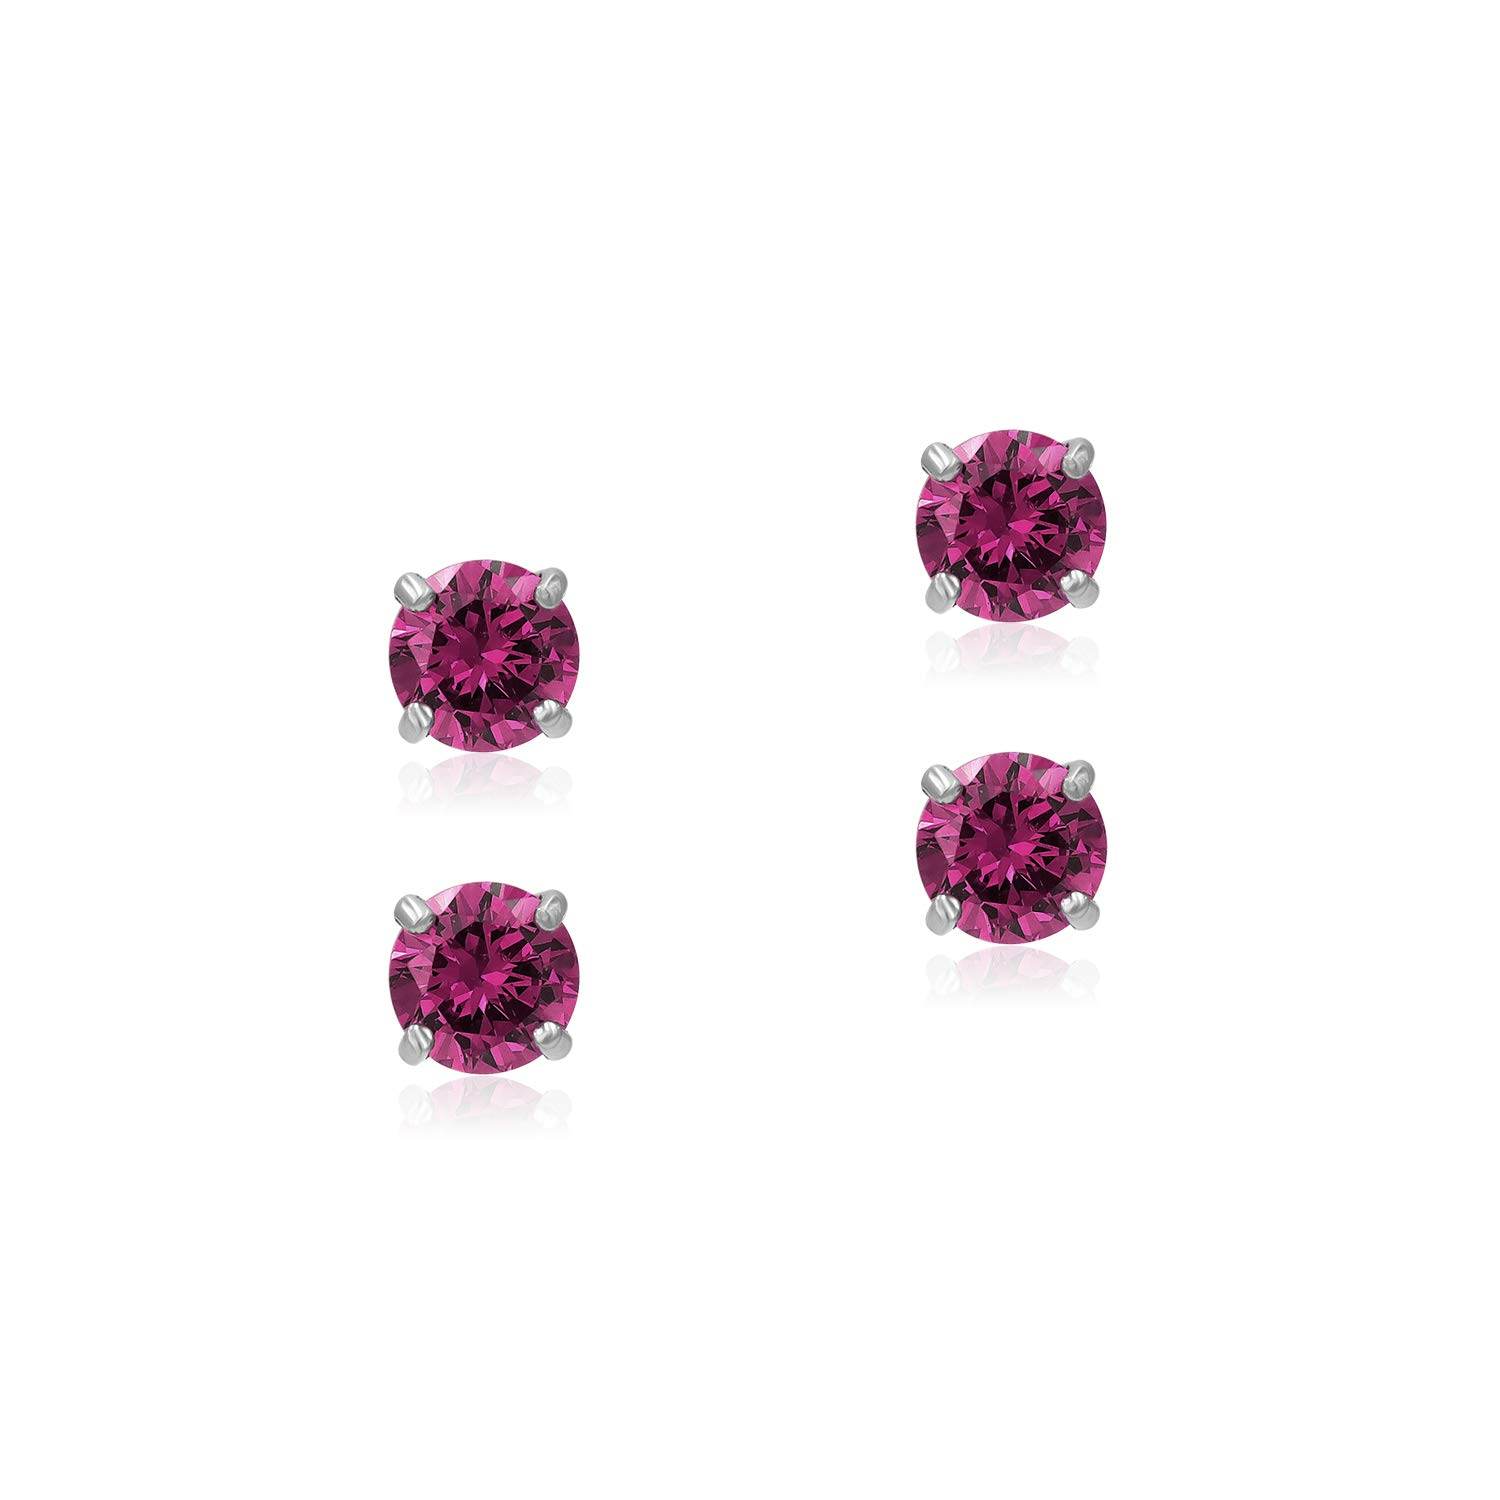 Sea of Ice White Gold Flashed 6mm Color CZ Cubic Zirconia Stud Earrings for Women and Girls